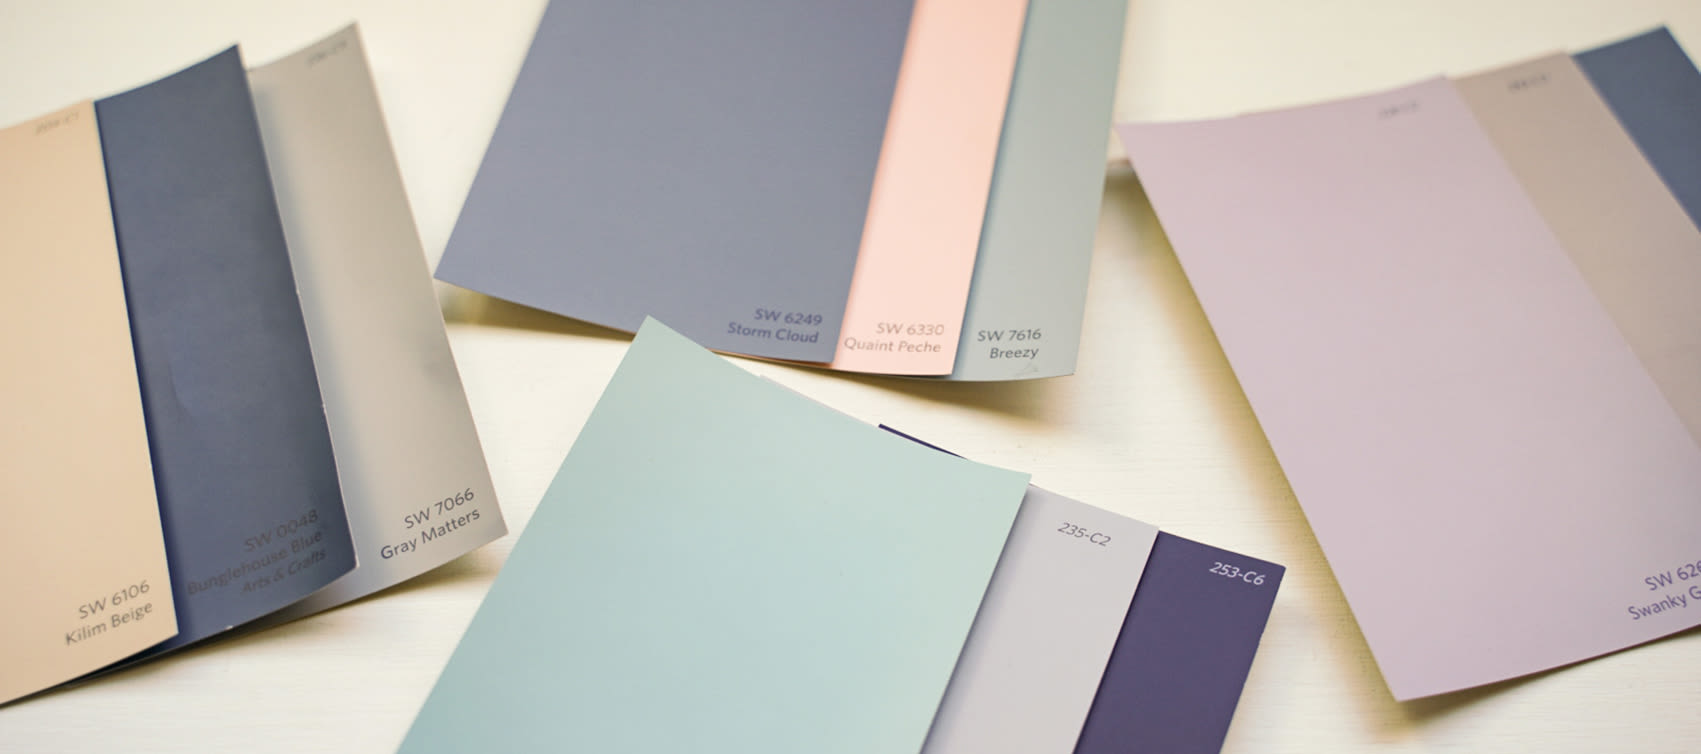 Prior to your moving in, choose from one of our six colors to serve as an accent wall in Harrison Tower in Portland